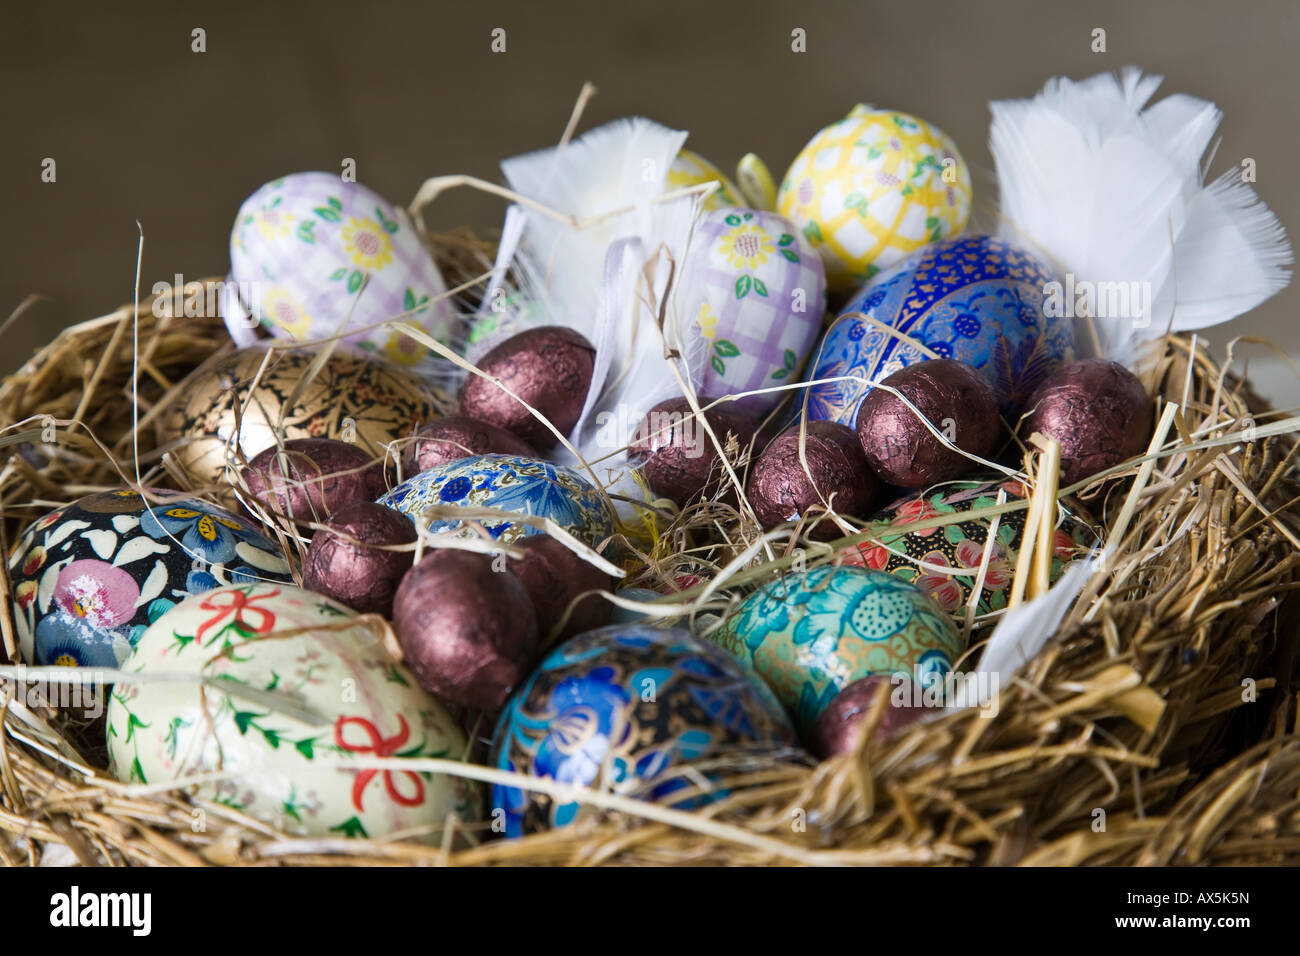 A group of decorated and chocolate eggs arranged in a straw basket a group of decorated and chocolate eggs arranged in a straw basket as an easter decoration surrey england negle Choice Image